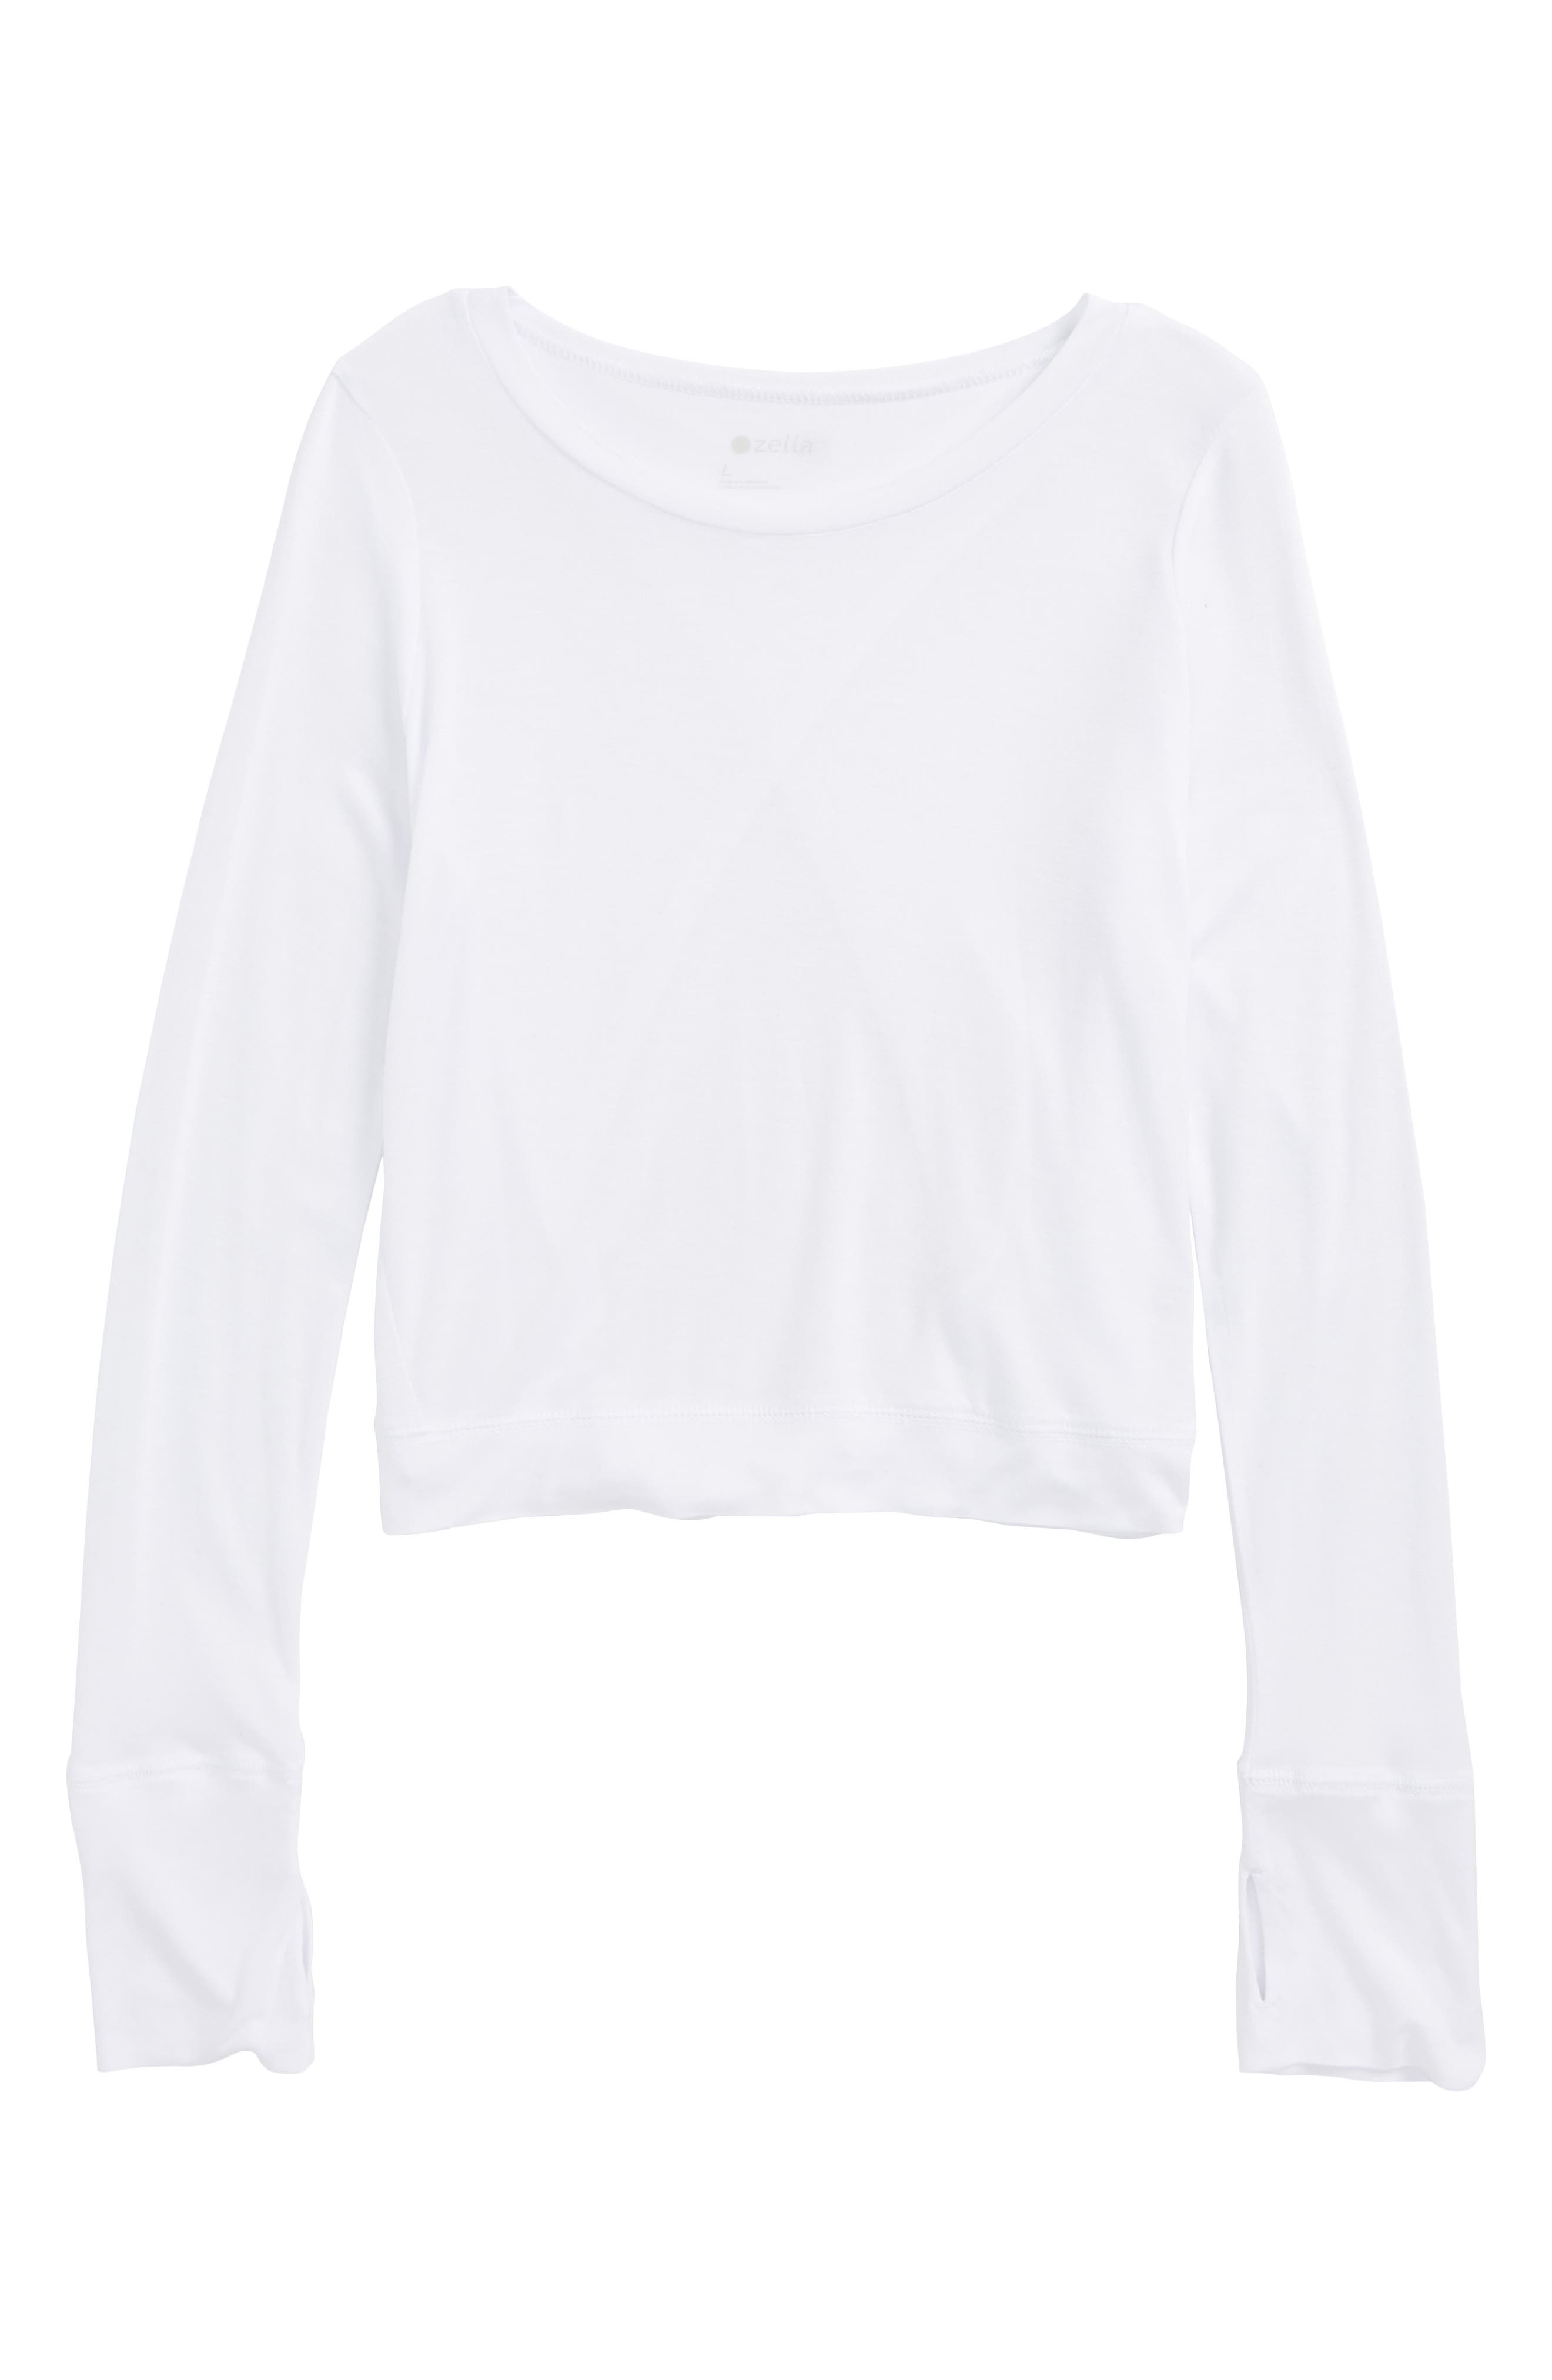 Crossover Back Tee,                         Main,                         color, 100